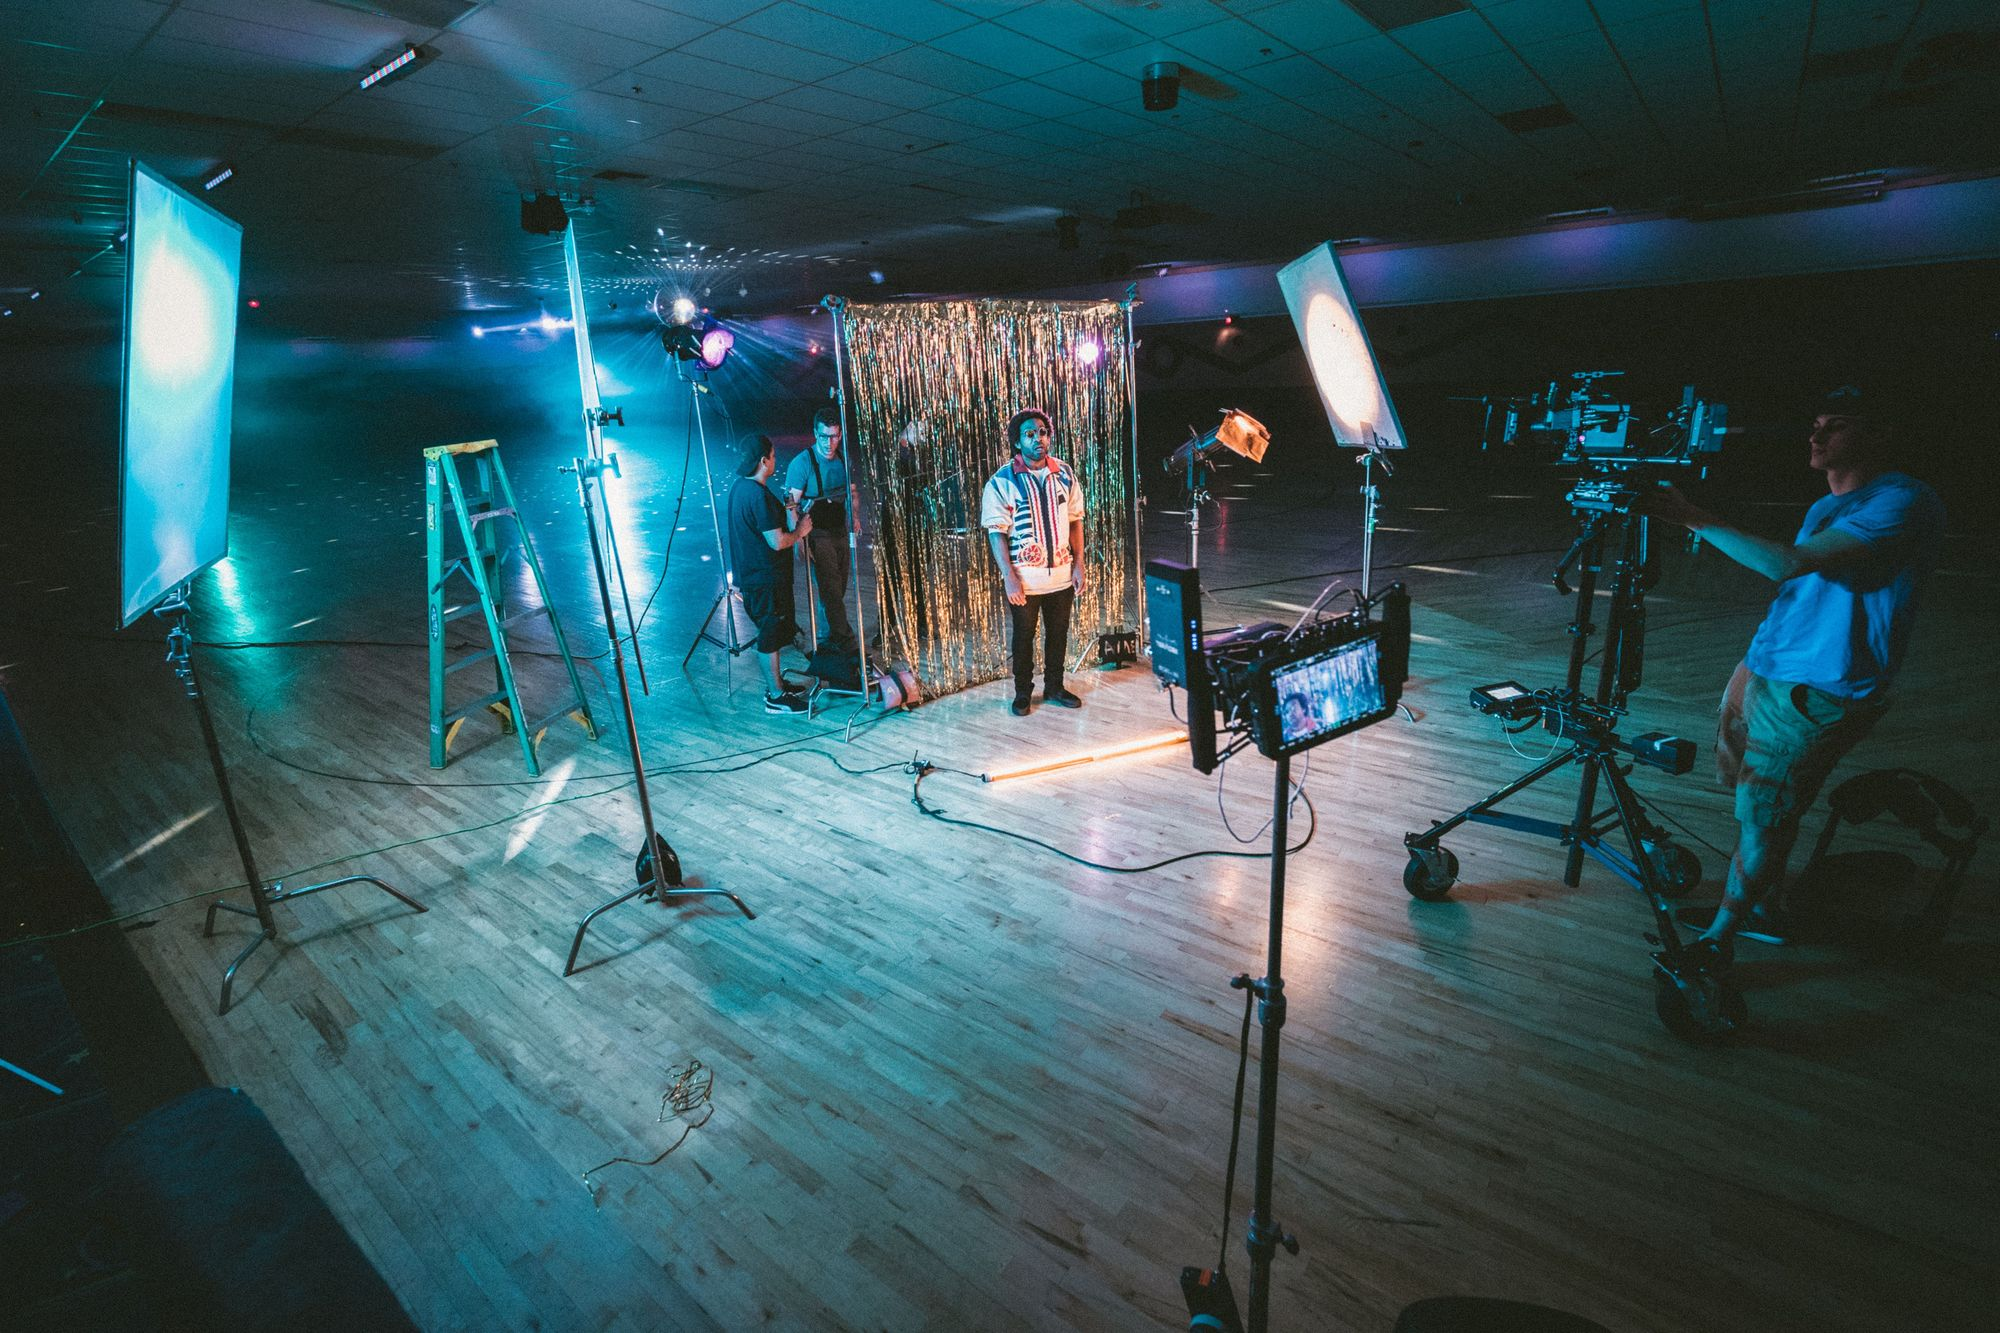 video-production-with-led-lighting-boom-microphones-and-cameras